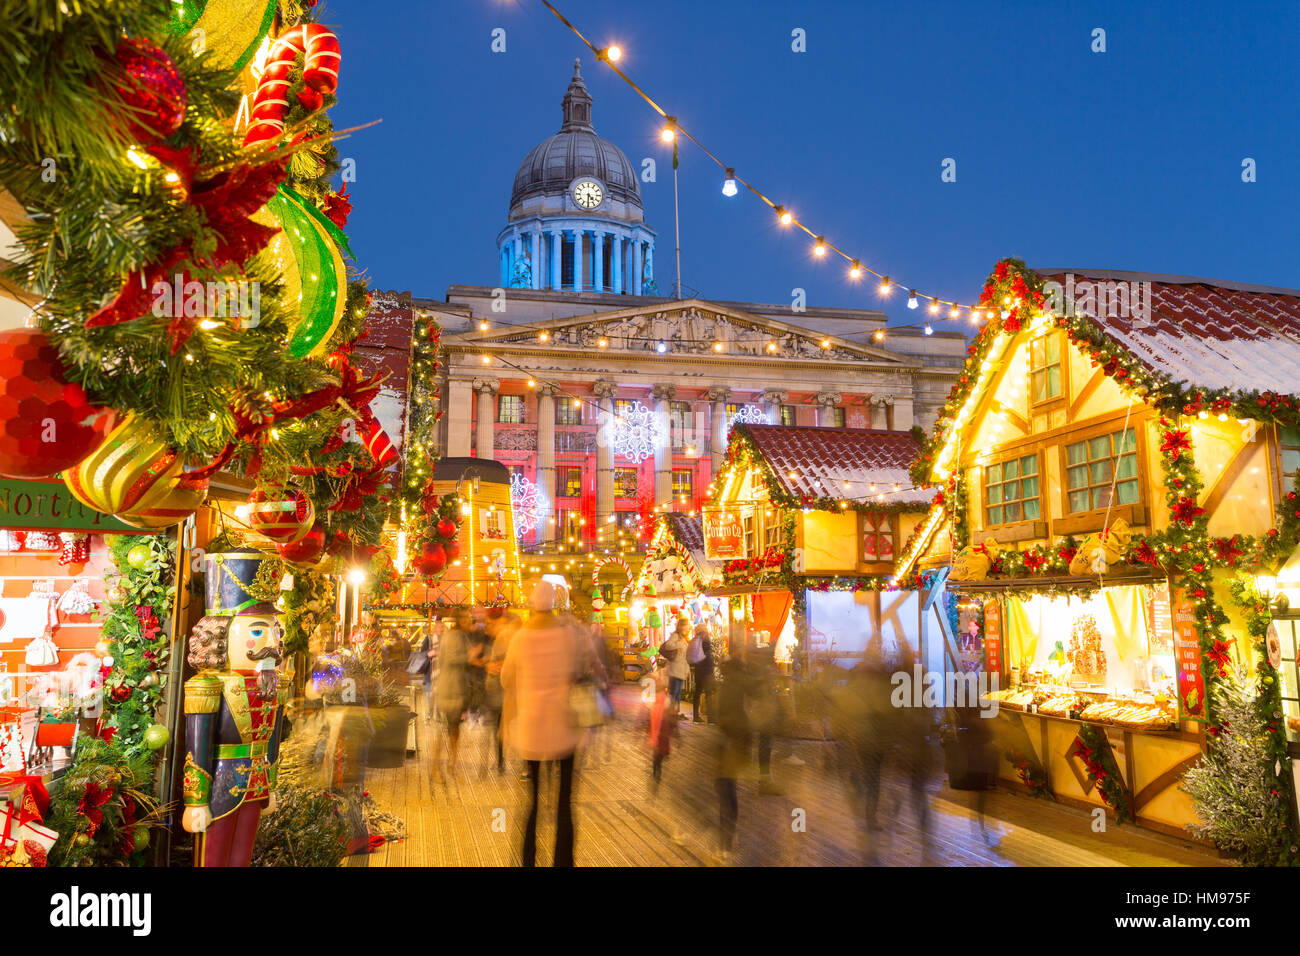 Christmas Market in the Old Town Square, Nottingham, Nottinghamshire, England, United Kingdom - Stock Image